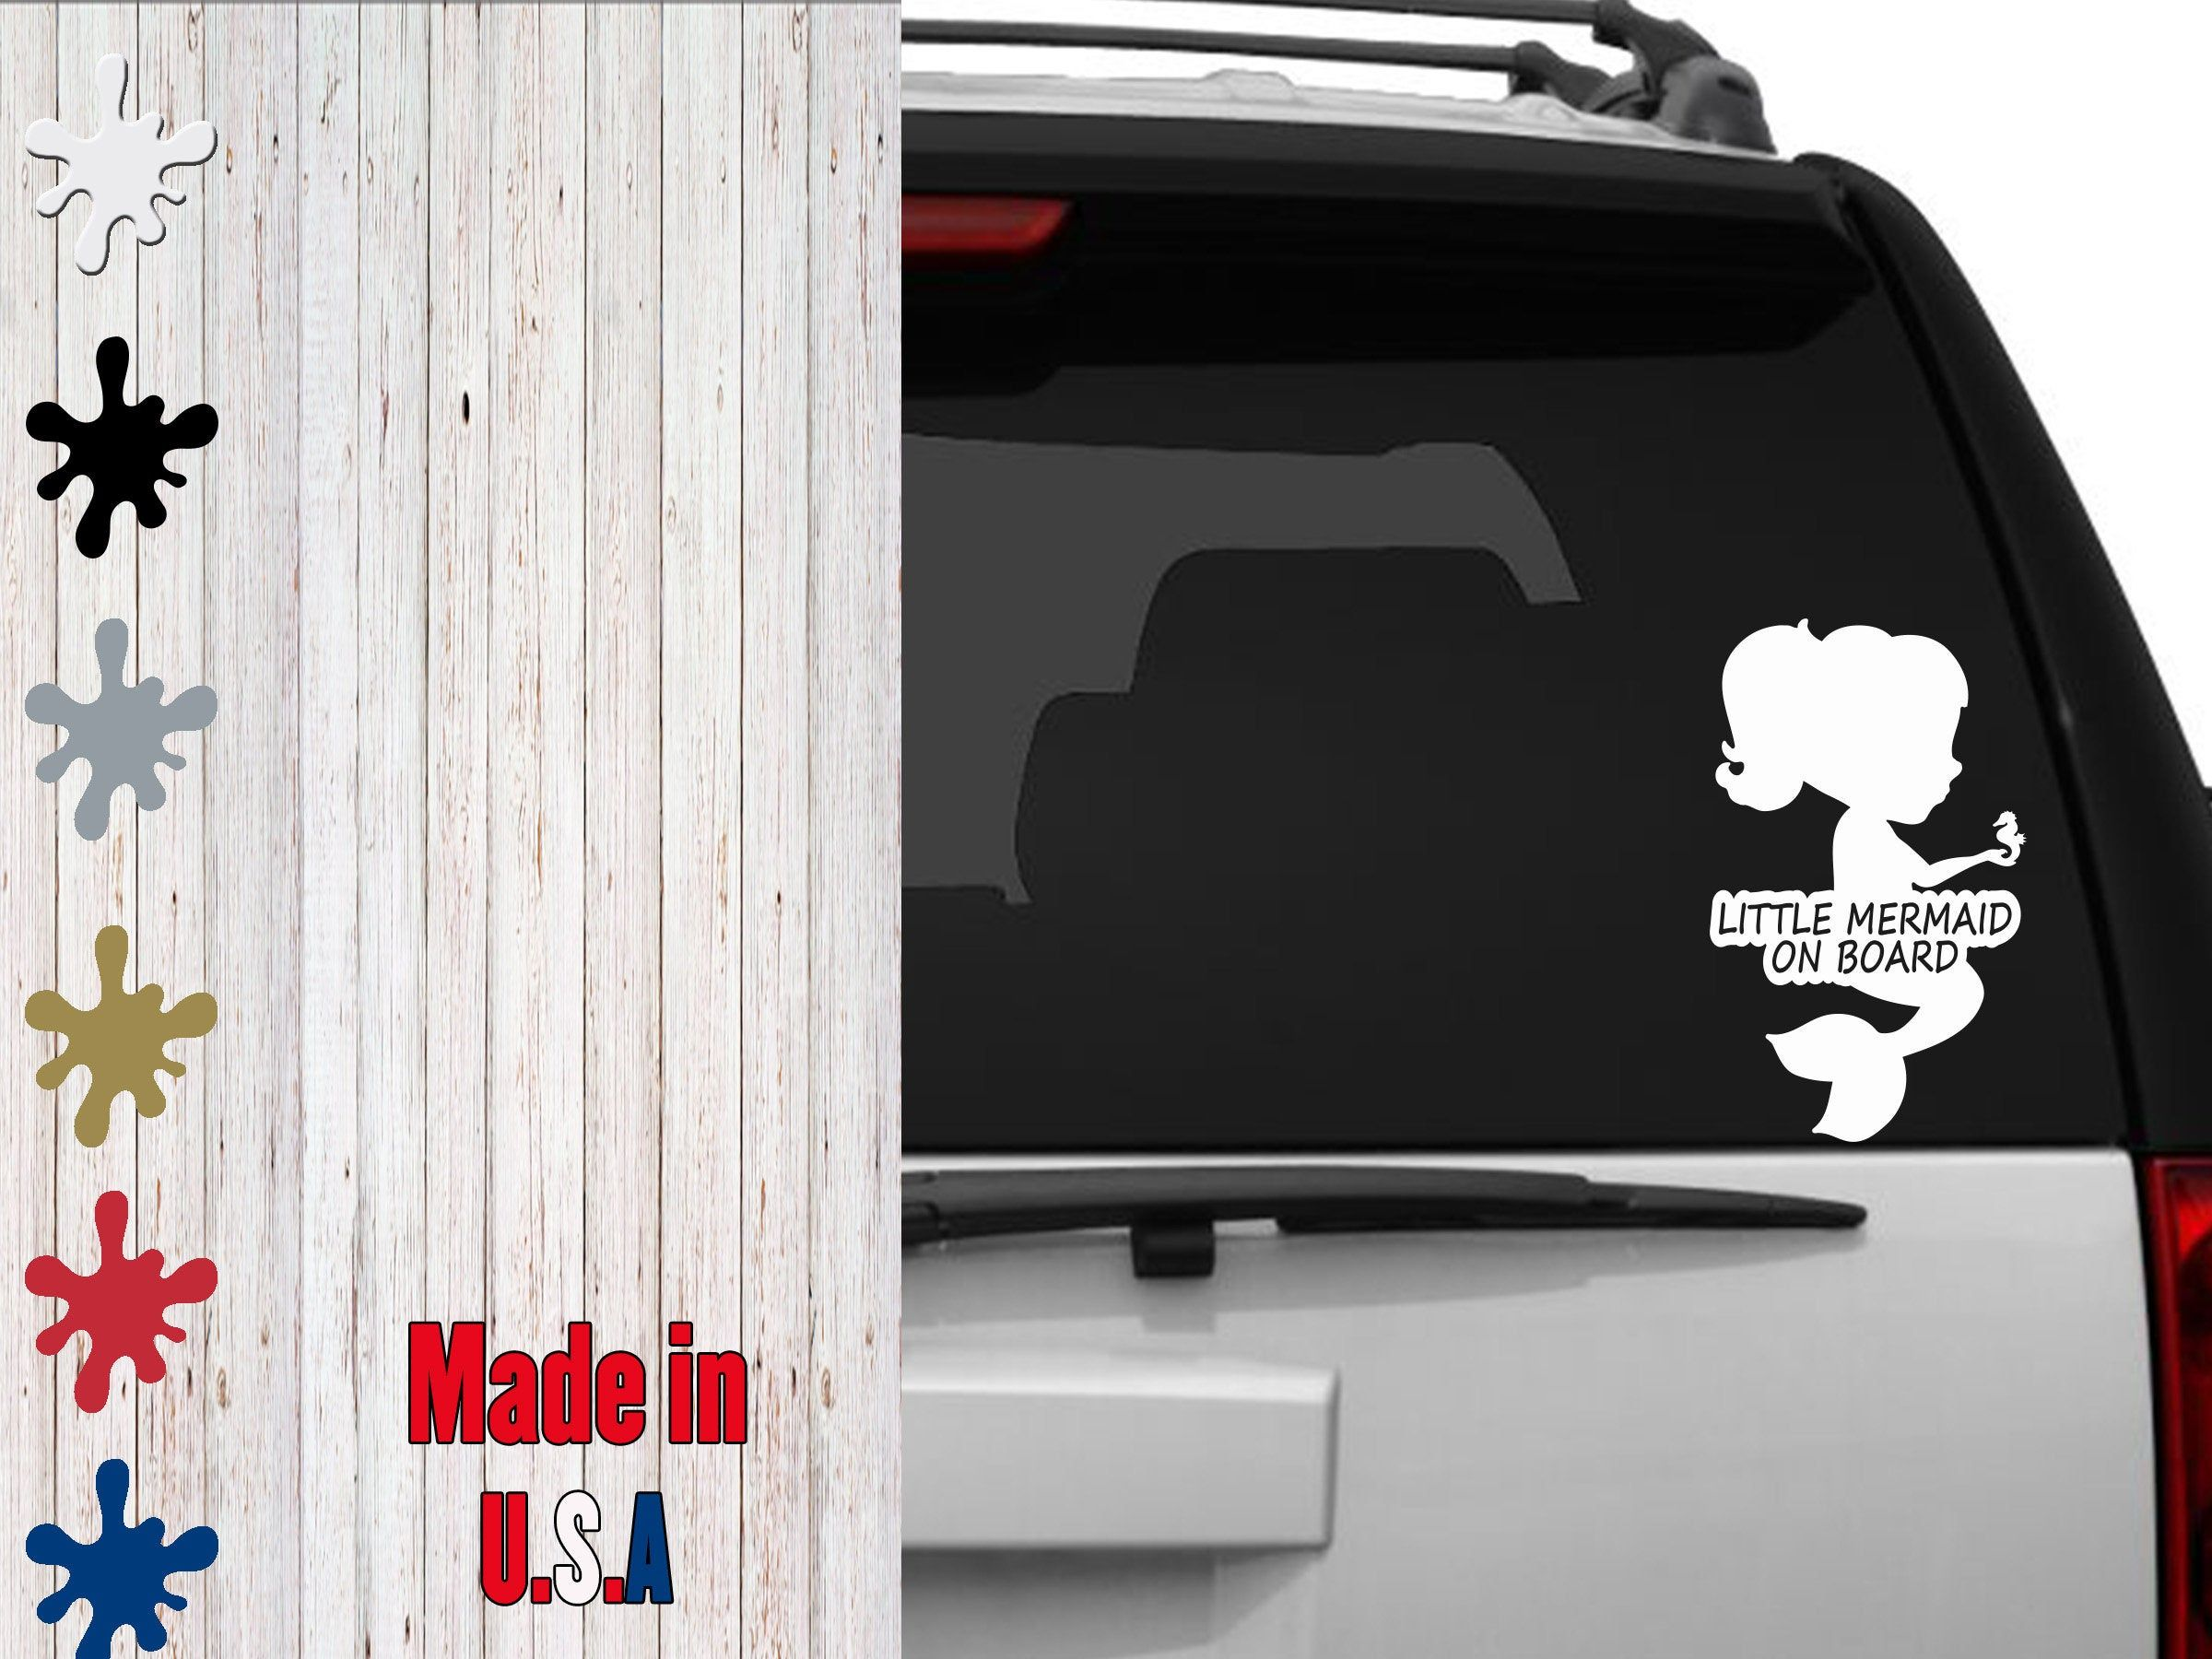 Little Mermaid On Board Decal Choose Your Size Car Decal Laptop Decal By Veiledtrove On Etsy Family Baby Lo The Little Mermaid Laptop Decal Baby Mermaid [ 1800 x 2400 Pixel ]